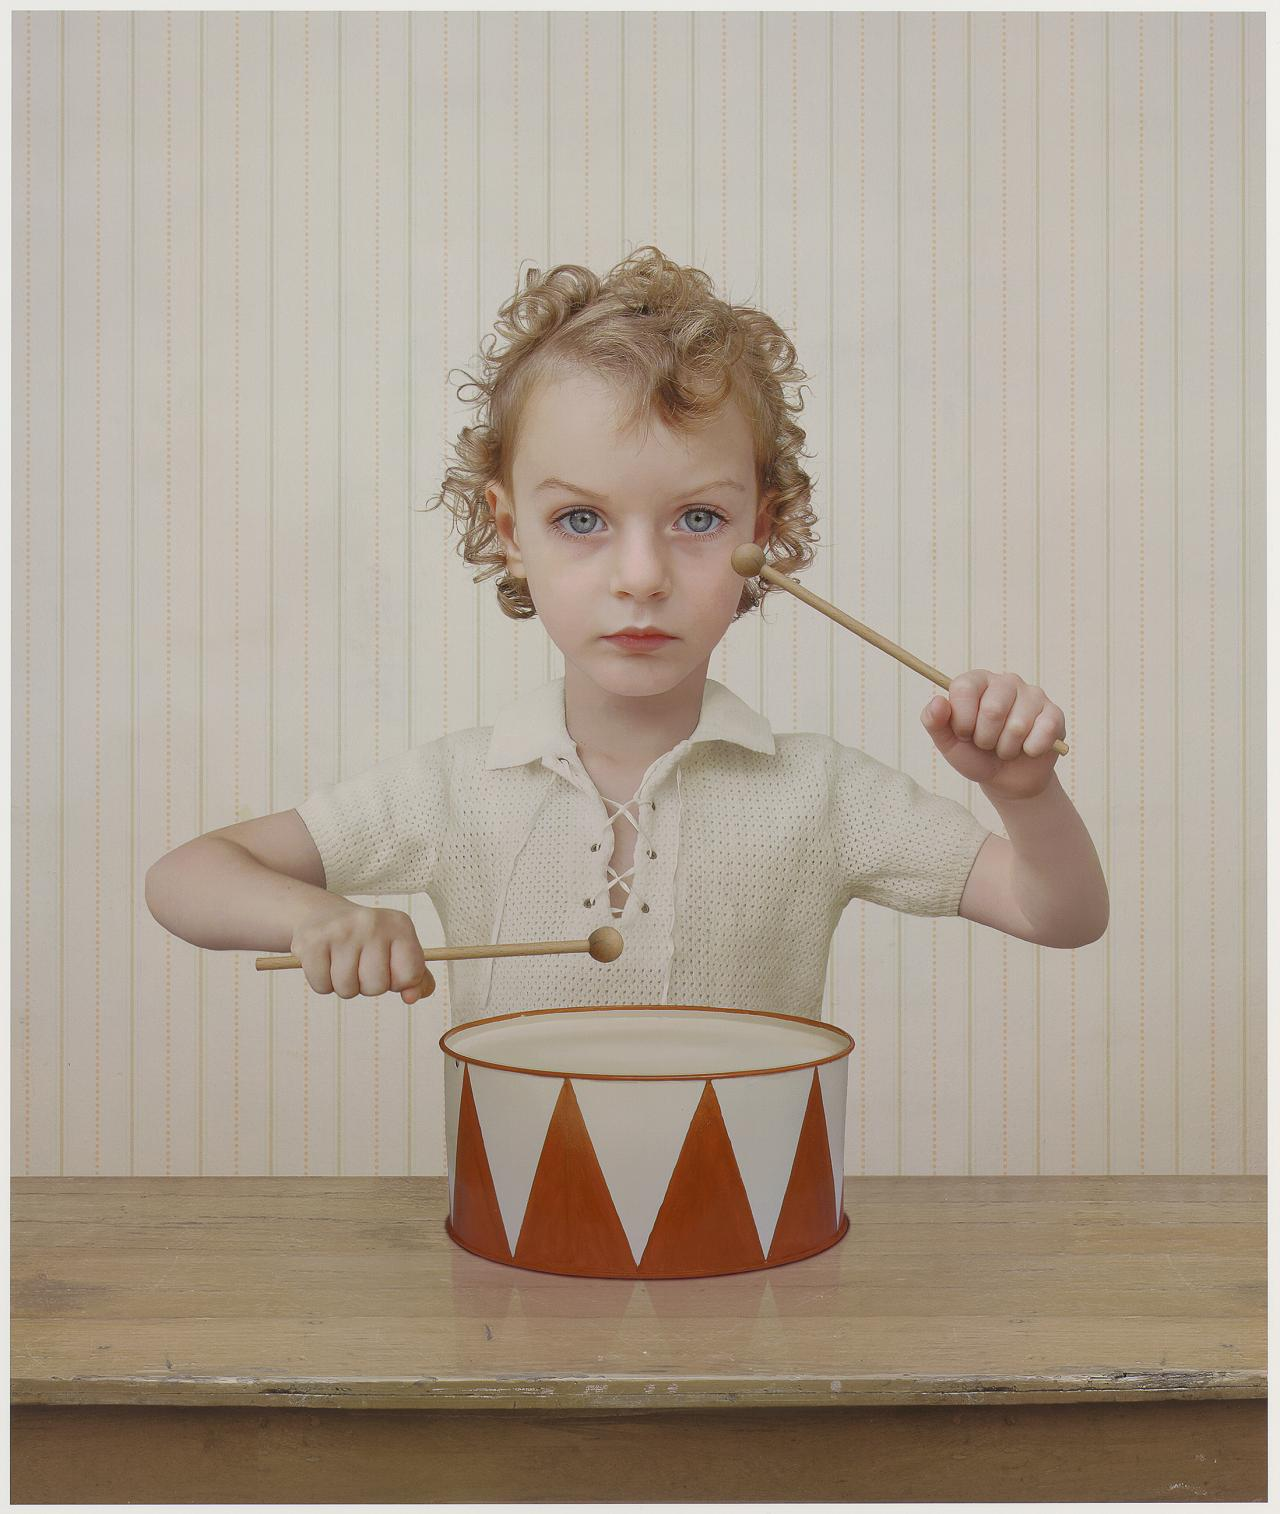 Loretta Lux German born 1969